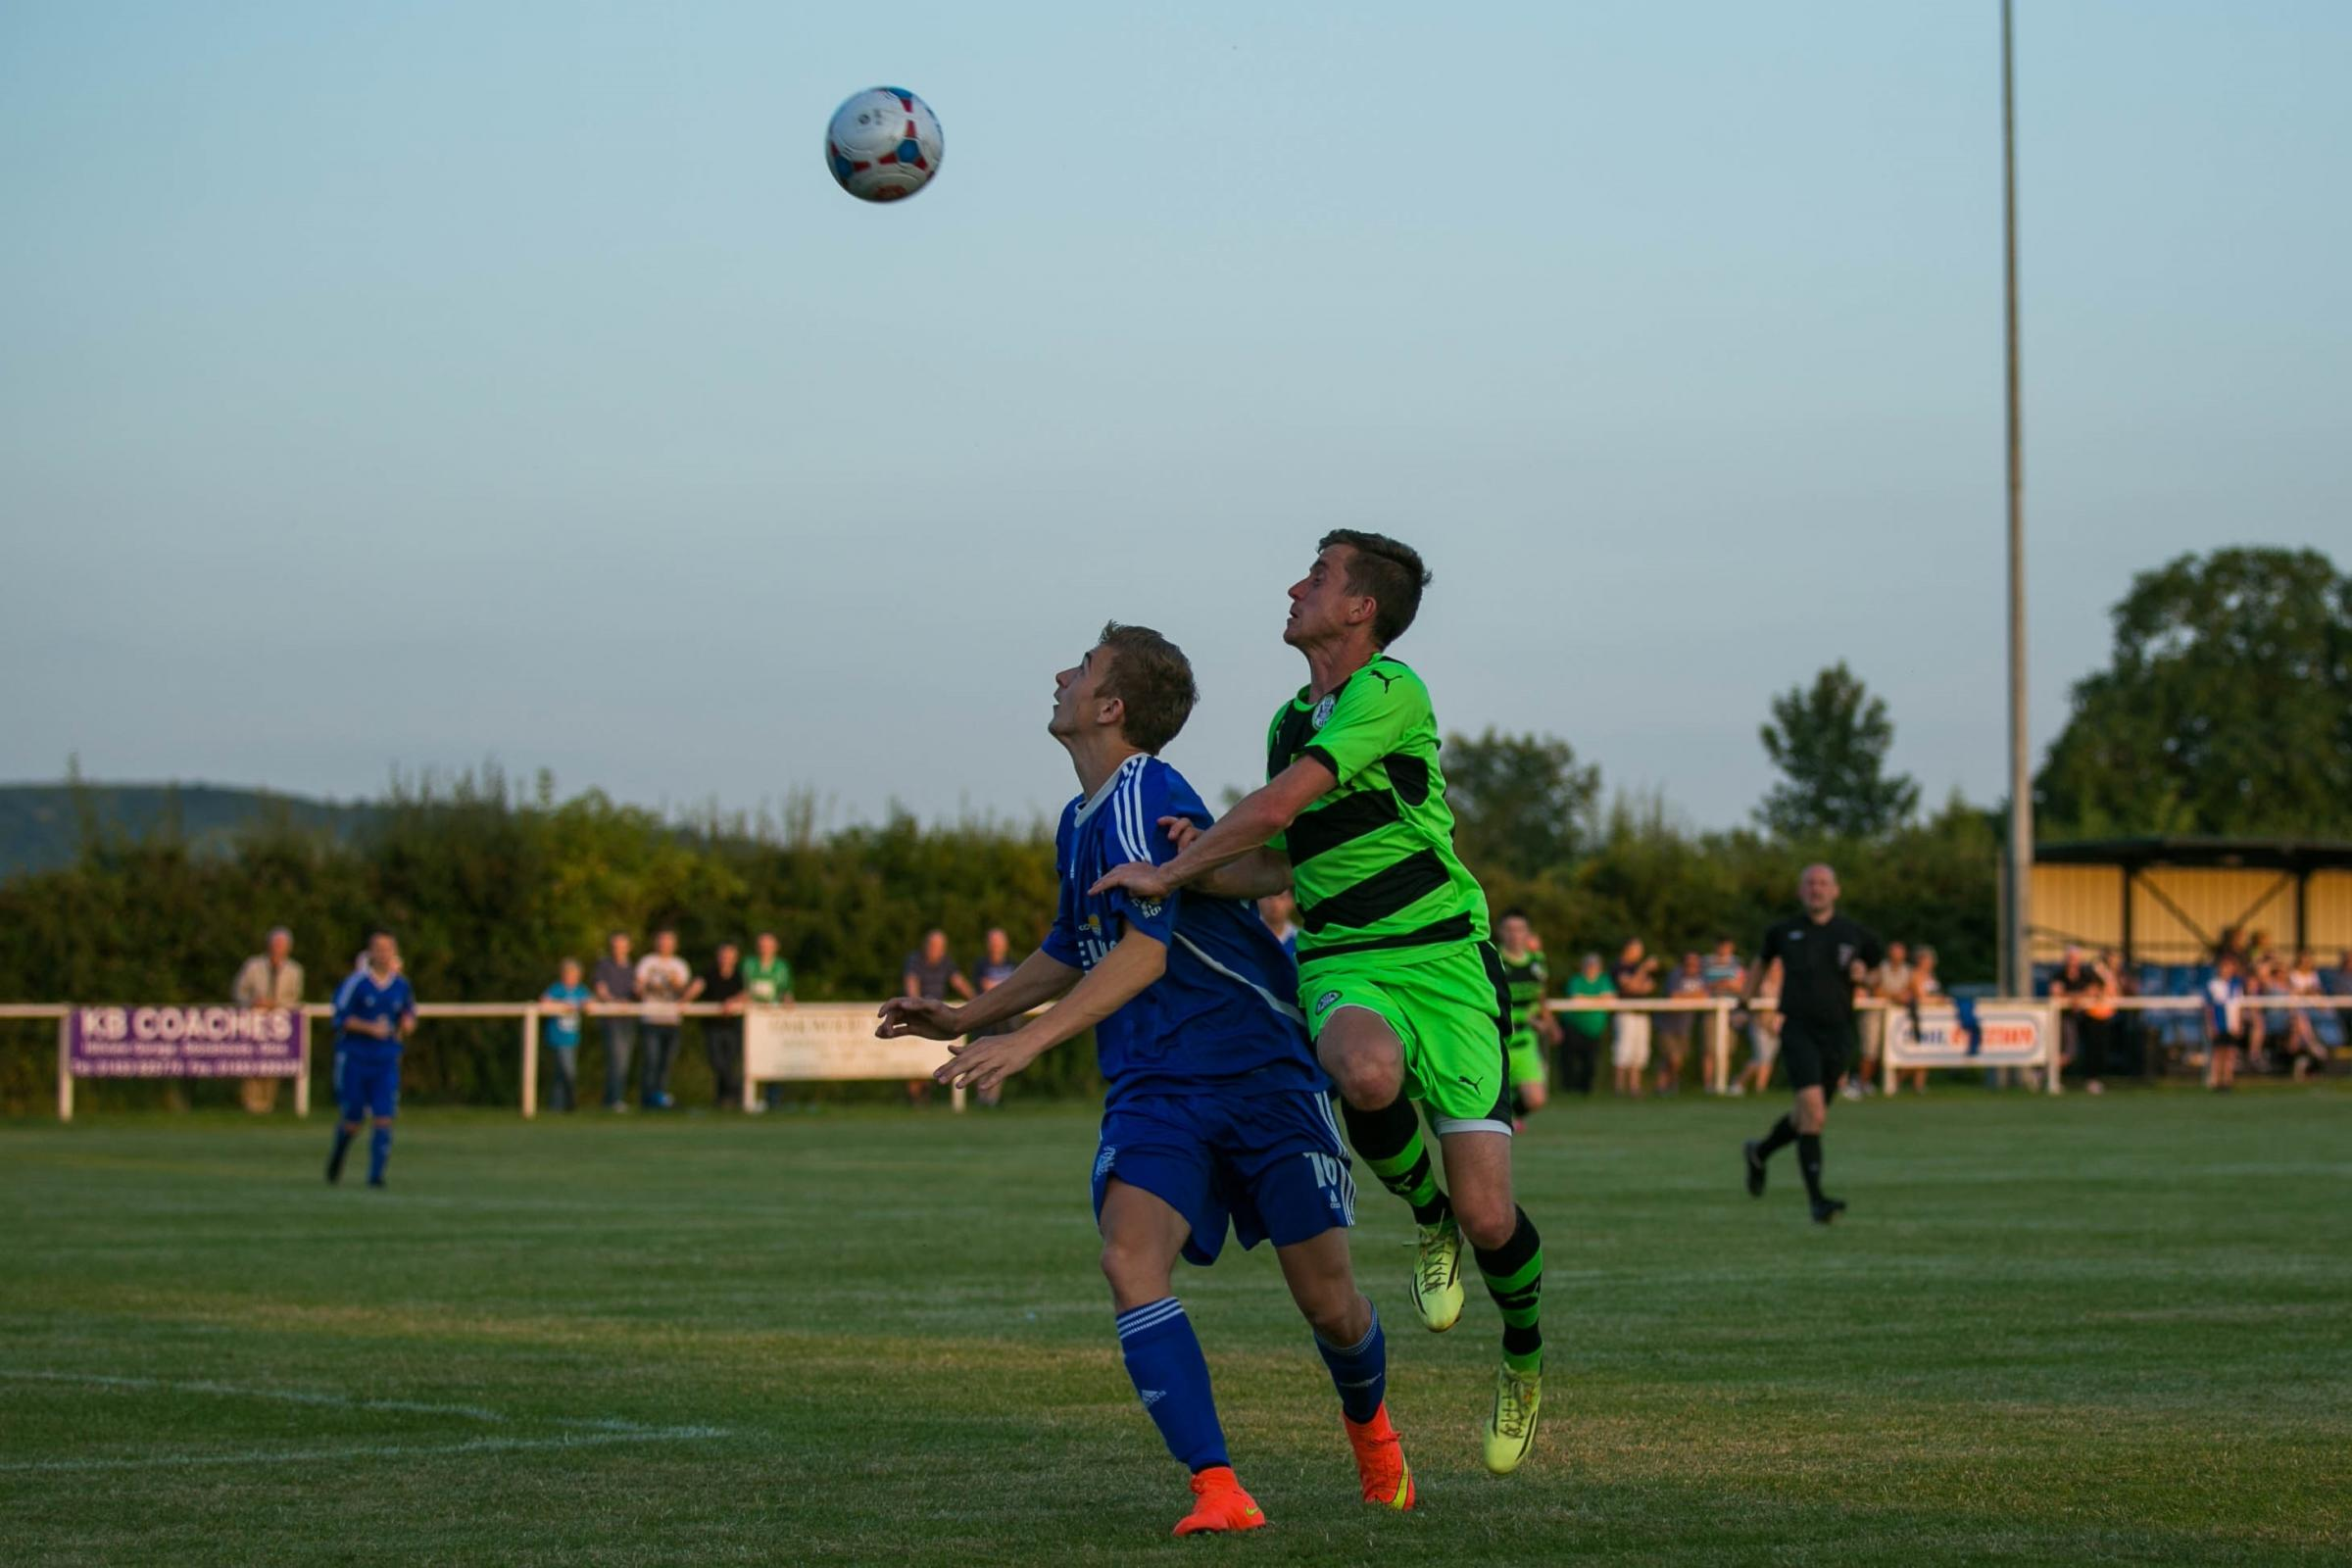 Football: Slimbridge do themselves proud against Forest Green